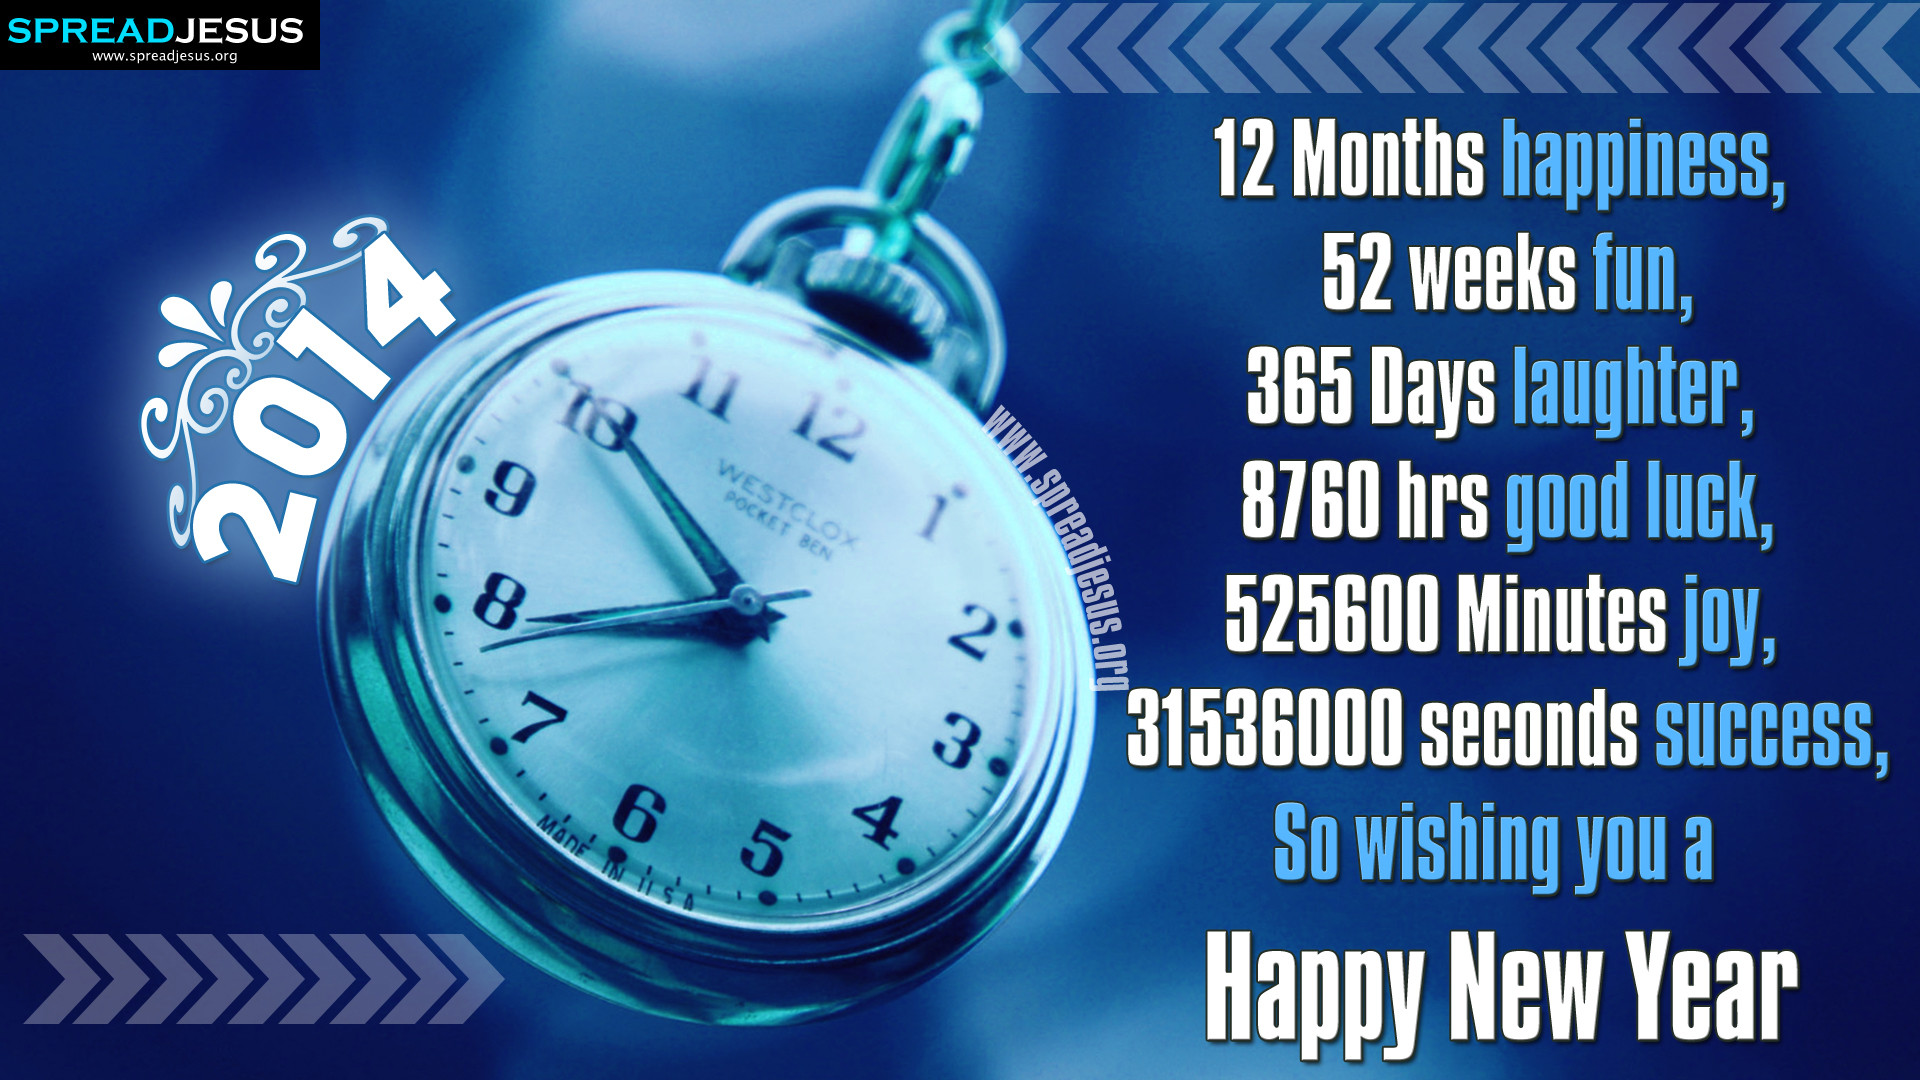 1920x1080 NEW YEAR 2014 GREETINGS HD-WALLPAPERS wishing you a happy new year 12  Months happiness